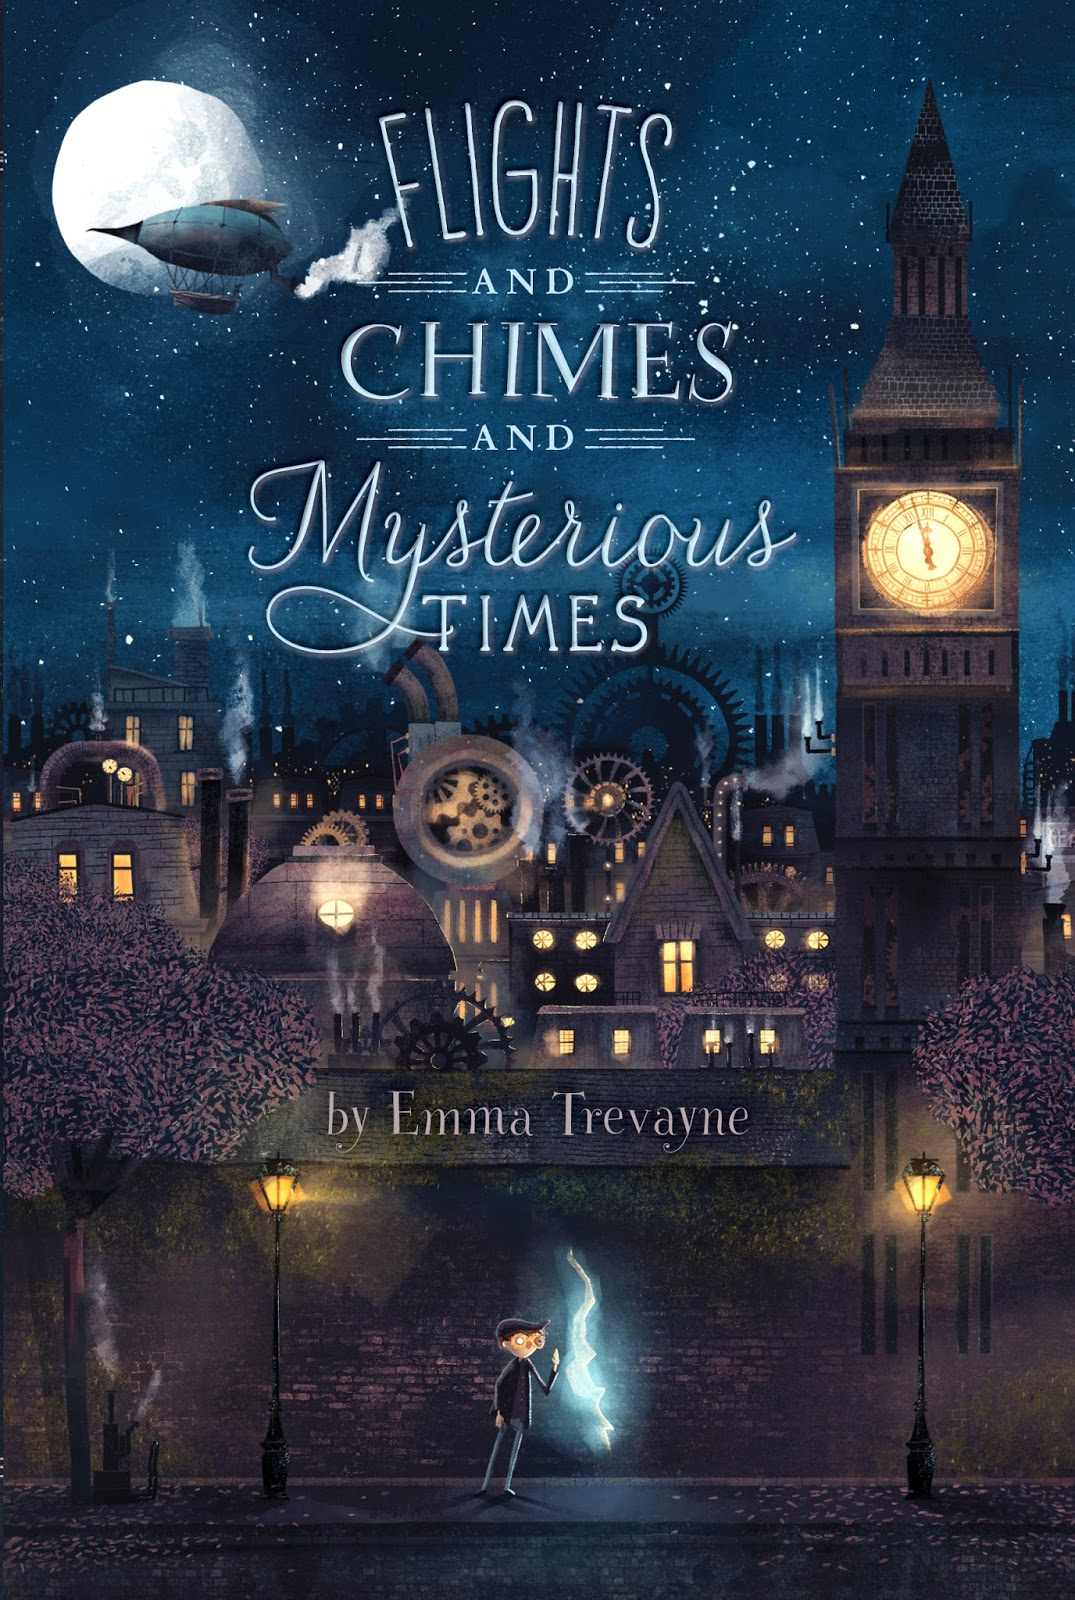 Flights and Chimes and Mysterious Times: exclusive cover reveal + giveaway!